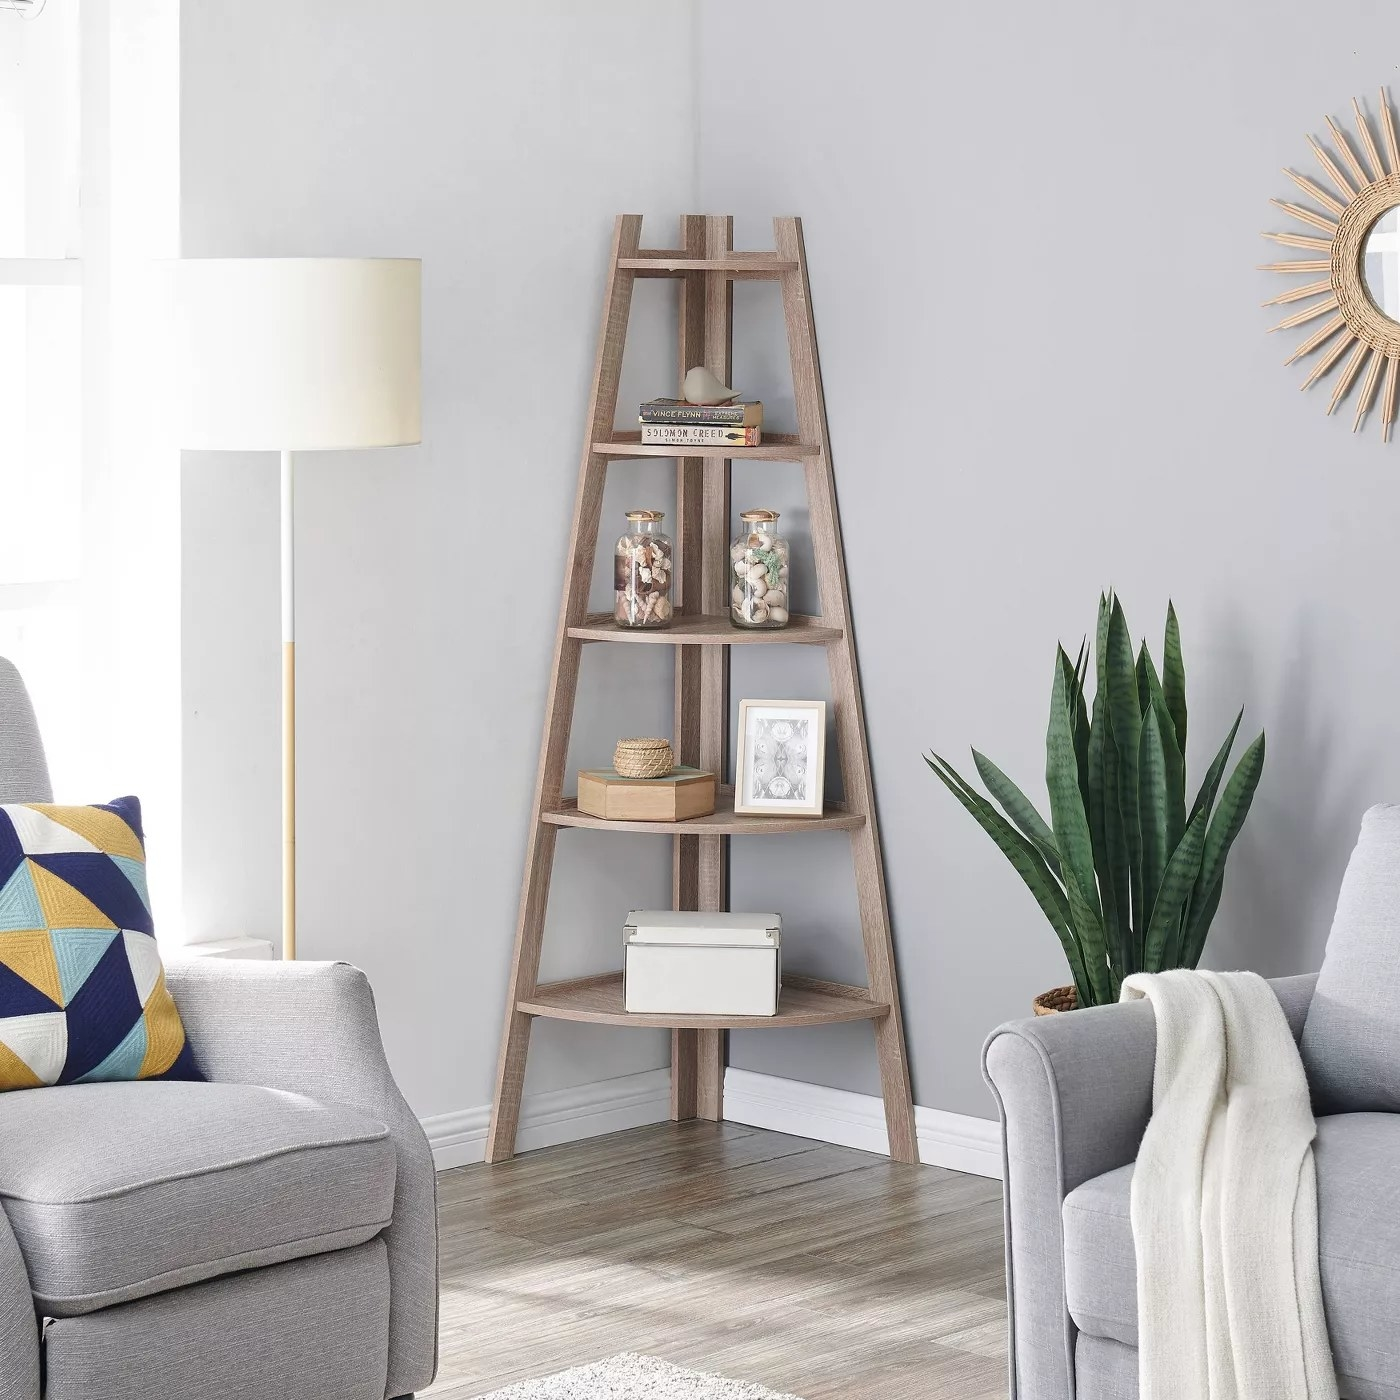 The corner shelf in a living room with five separate shelves